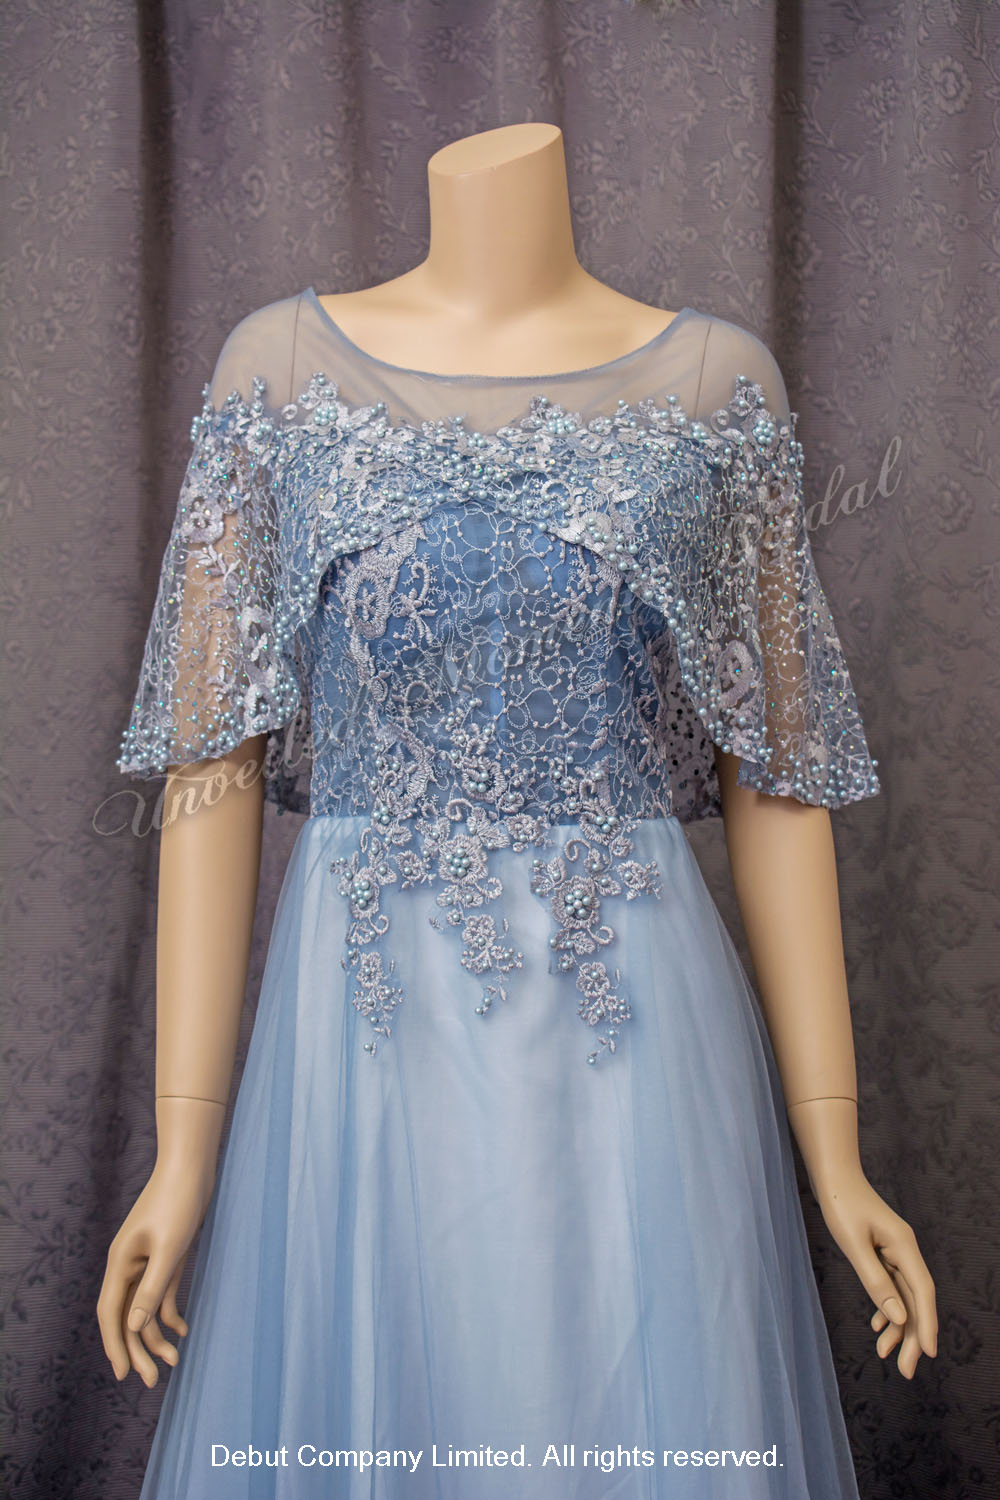 See-through round neckline, A-line evening dress with decorative lace overlay cape for mother-of-bride. Colour: Dusty Blue. 圓領口, 蕾絲仿珍珠閃石披肩, A-line款粉藍色媽咪奶奶晩裝裙